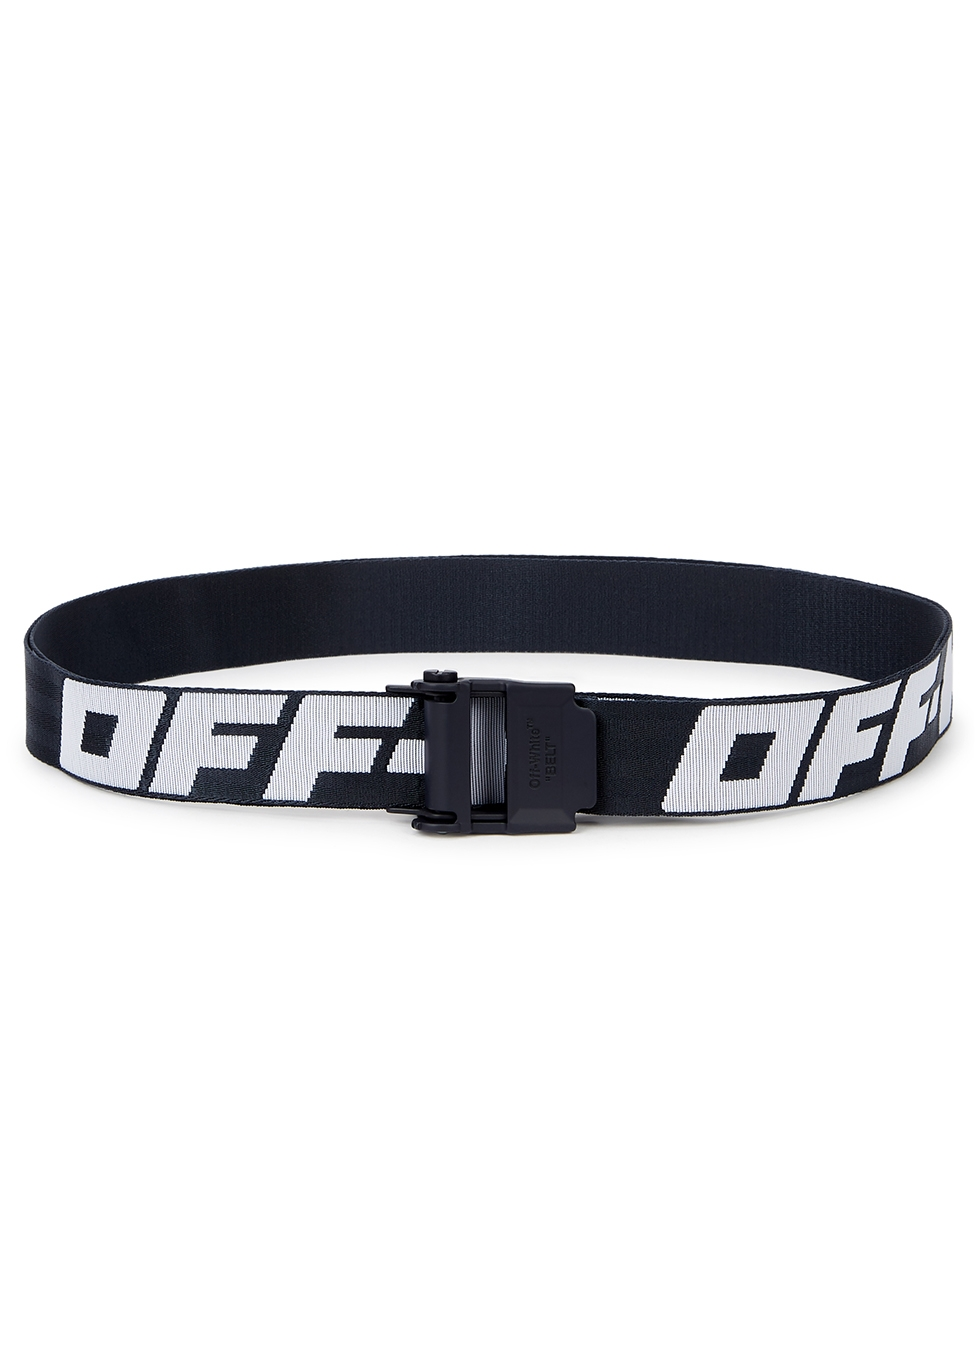 Off White Industrial 2.0 logo jacquard